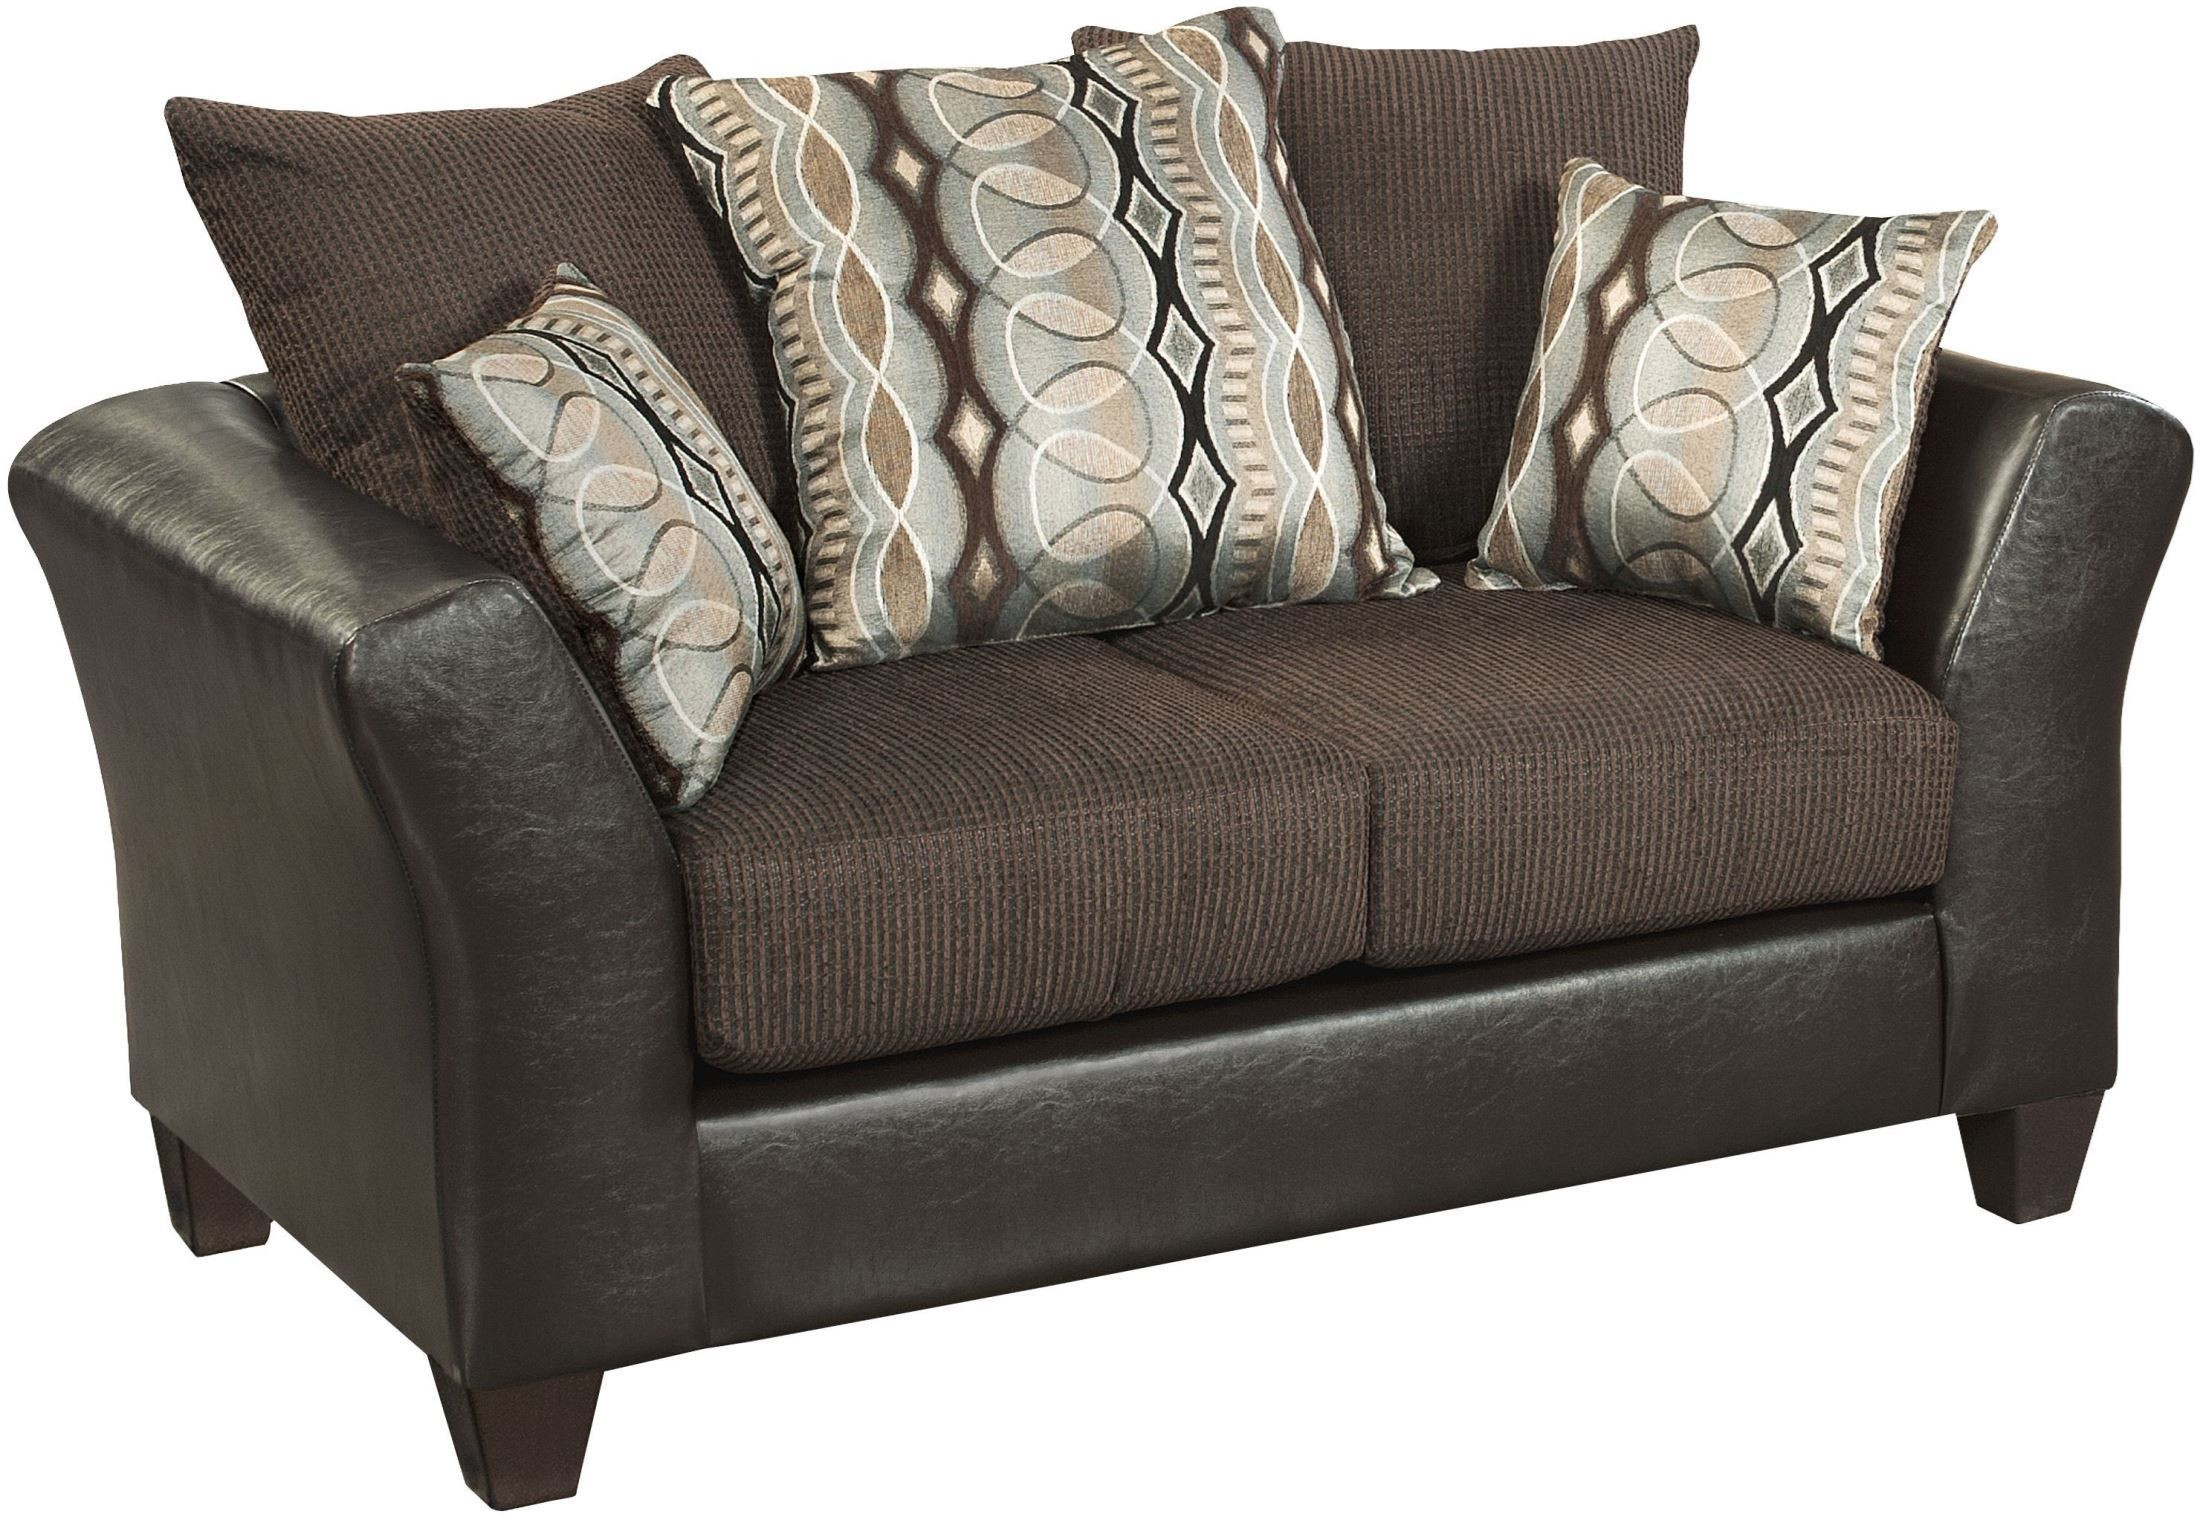 Riverstone Rip Sable Chenille Loveseat Rs 4173 01l Gg Renegade Furniture